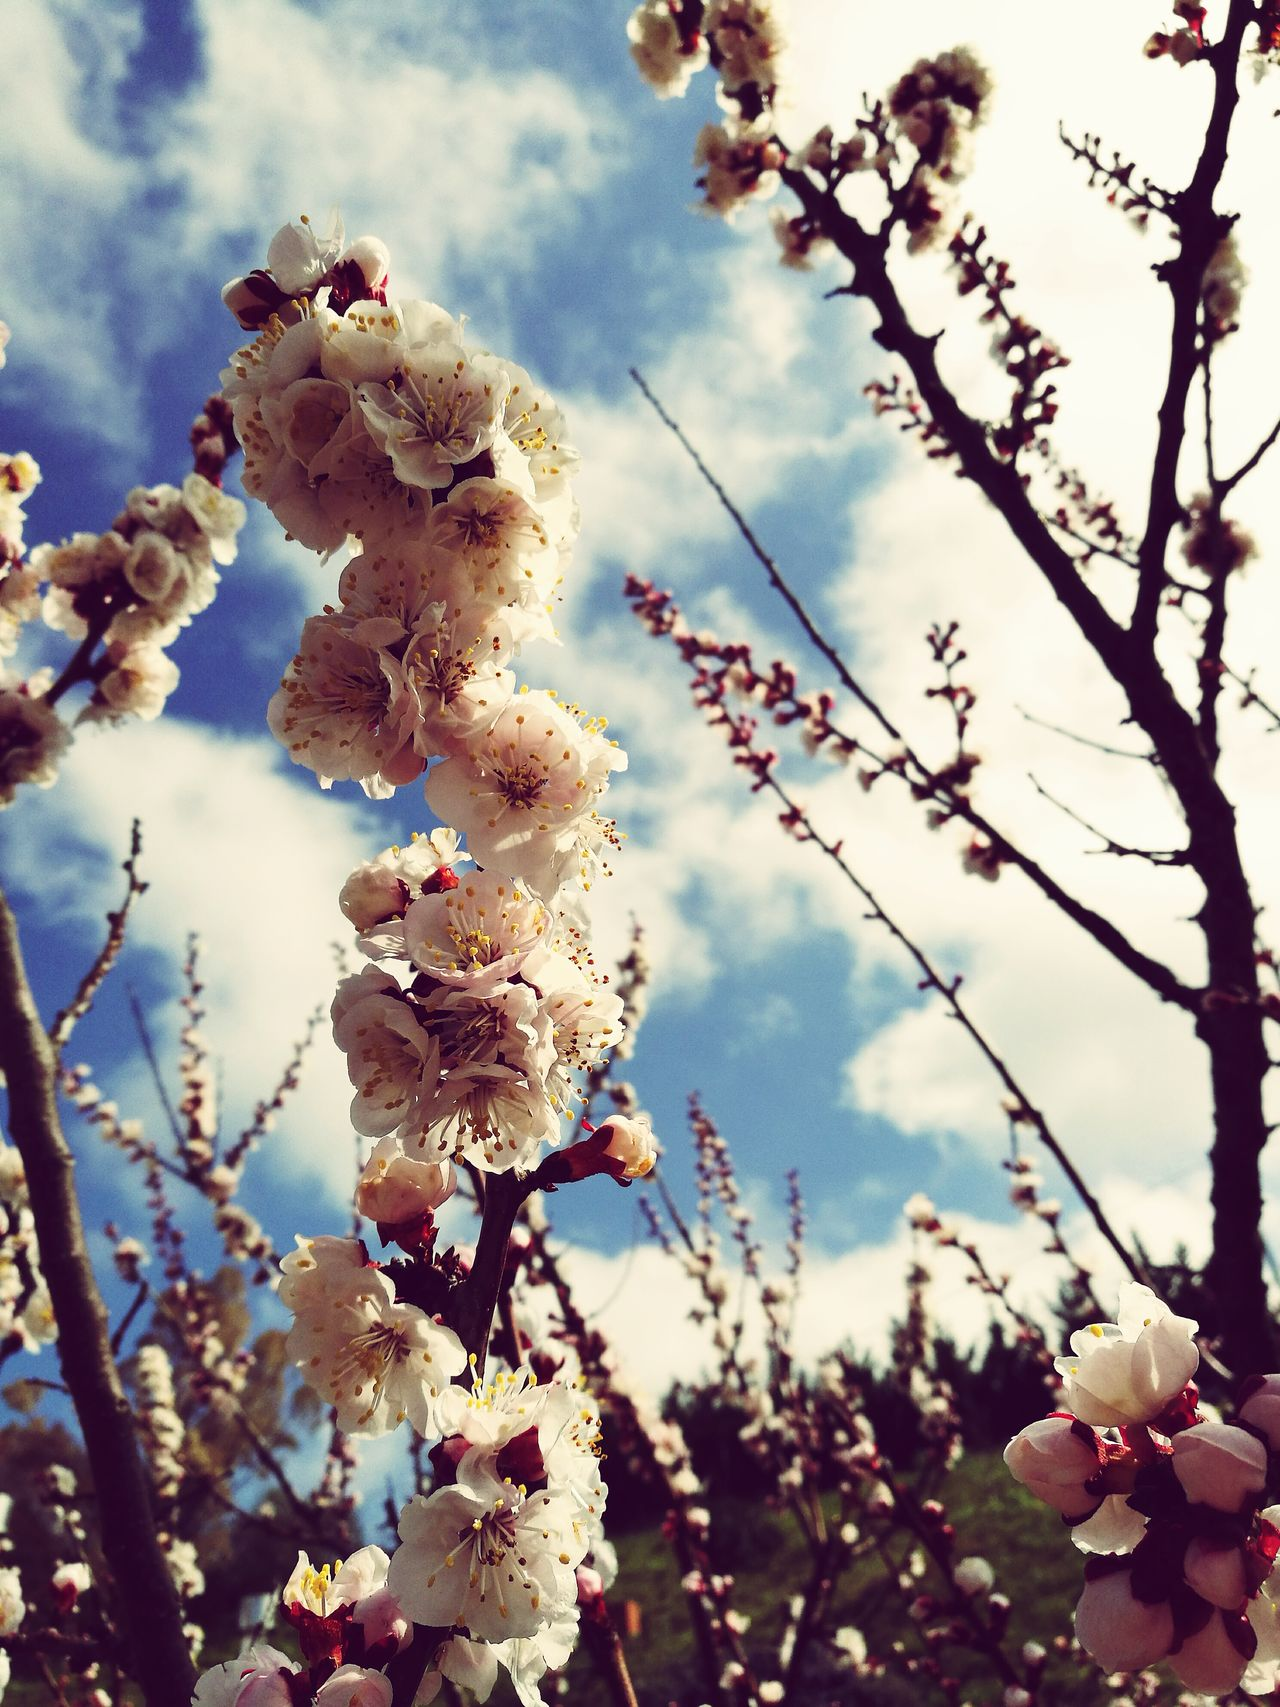 Nature Sunlight Growth Beauty In Nature Cloud - Sky Tree Blossom Flower Freshness Apricot Tree Apricotflower No People Pink Color Scenics